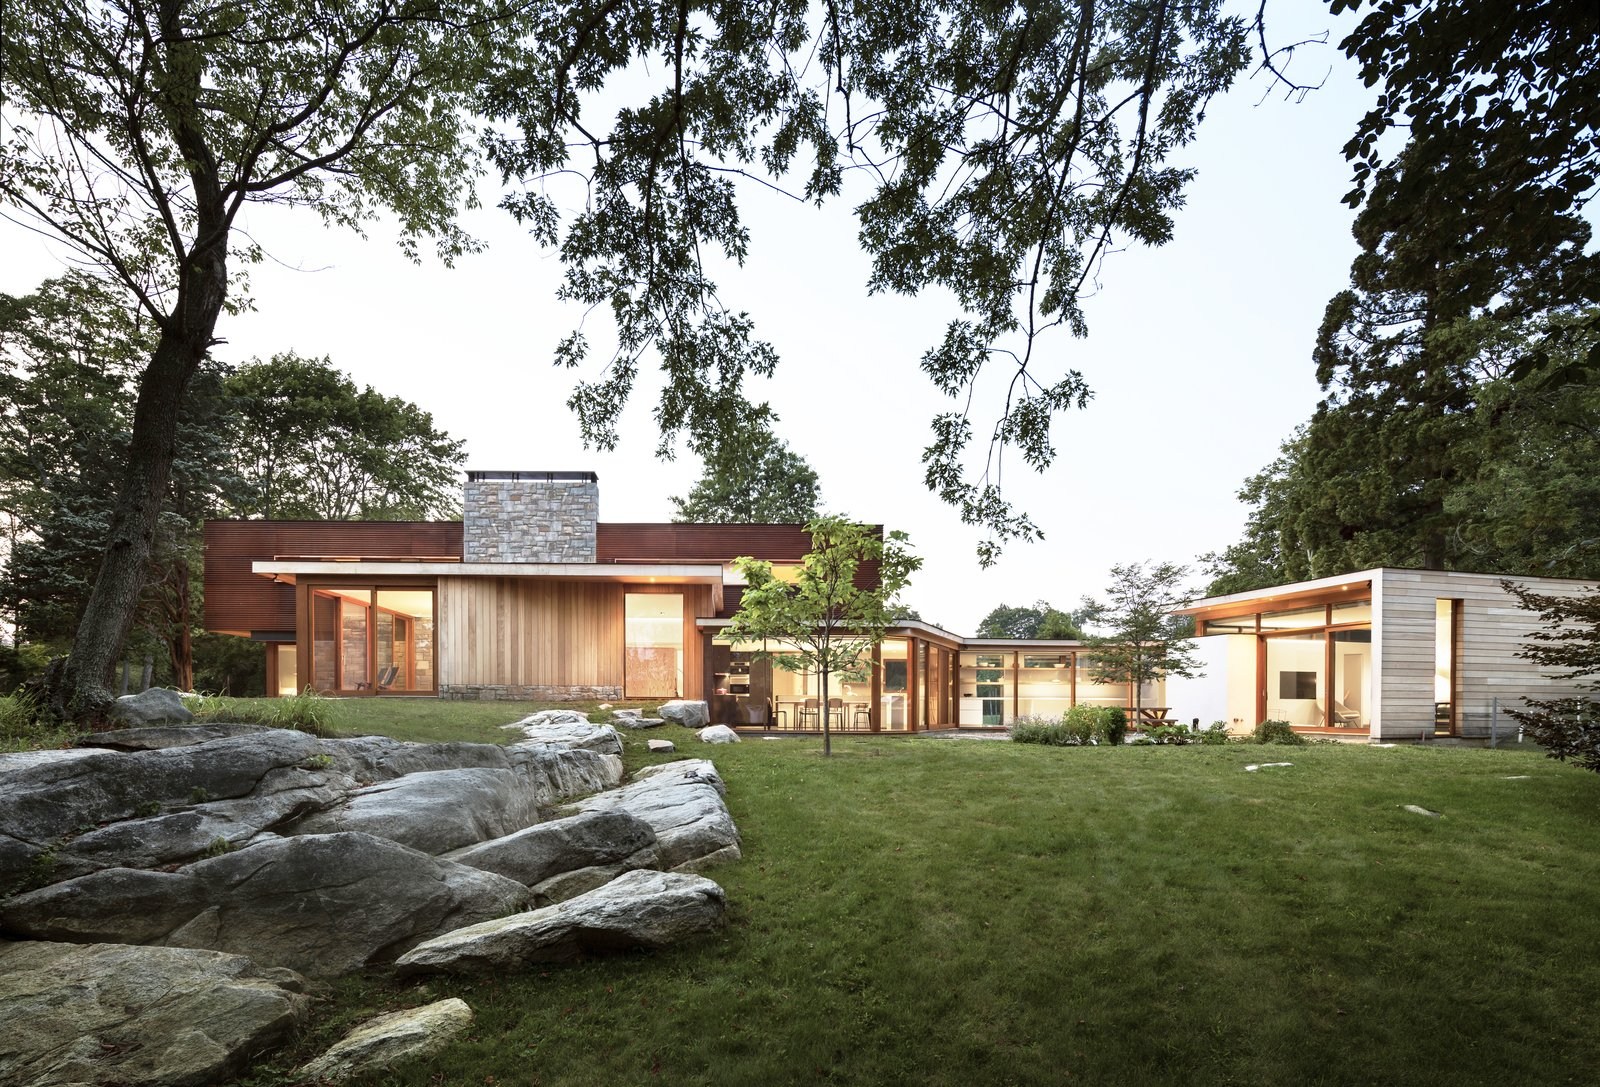 Tagged: Exterior, House, Metal Roof Material, Wood Siding Material, Stone Siding Material, Metal Siding Material, and Flat RoofLine.  Best Photos from Stonington/Lincoln Residence